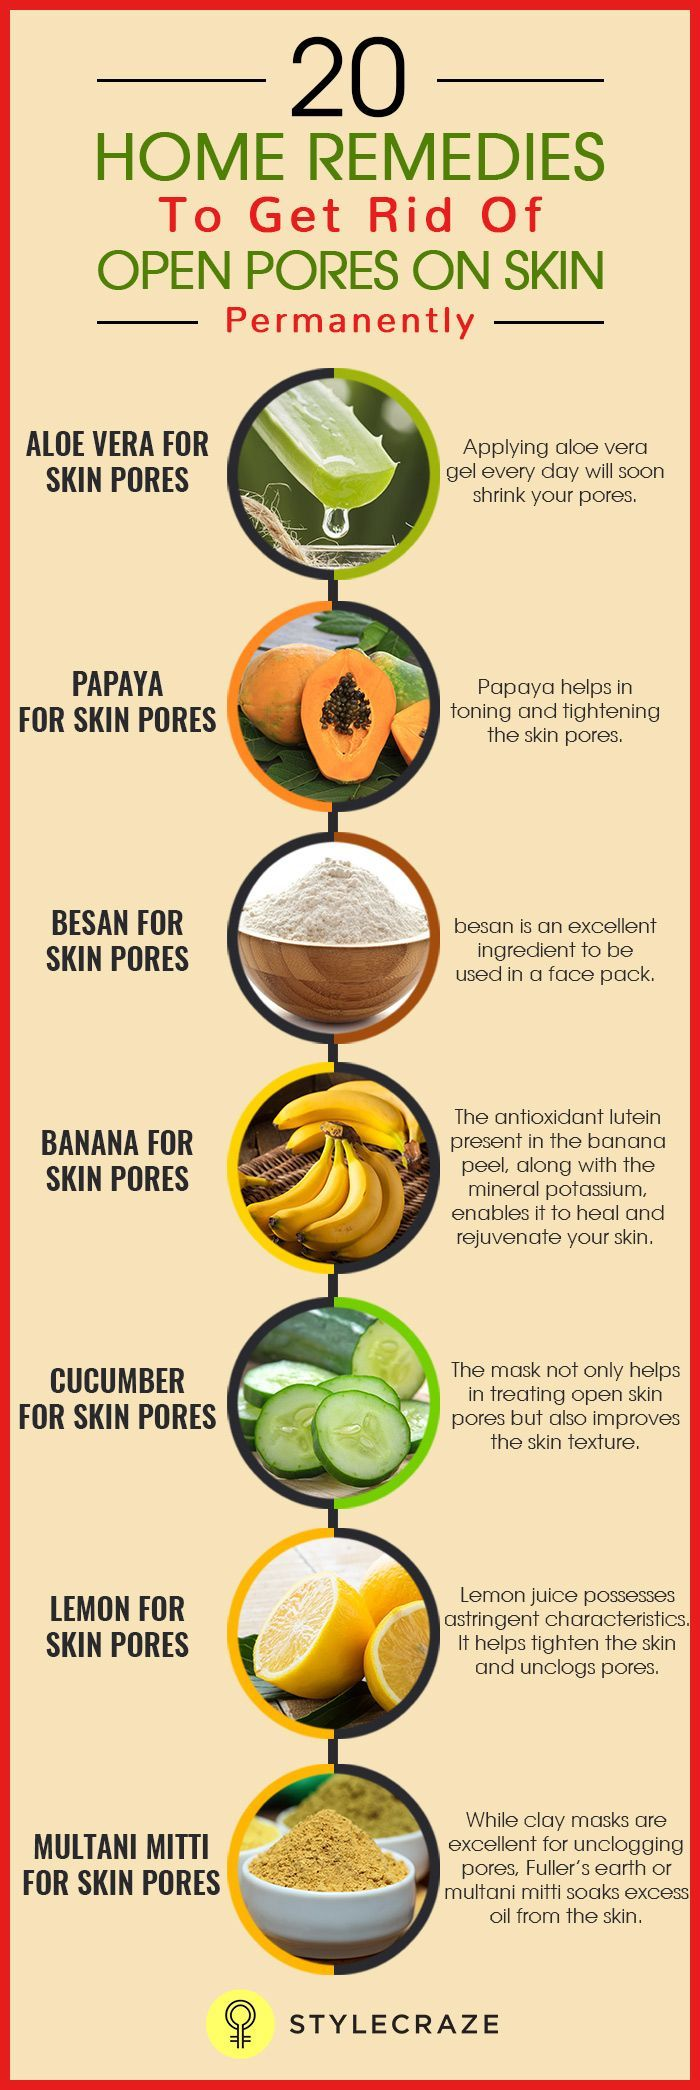 20 Home Remedies To Get Rid Of Open Pores On Skin …